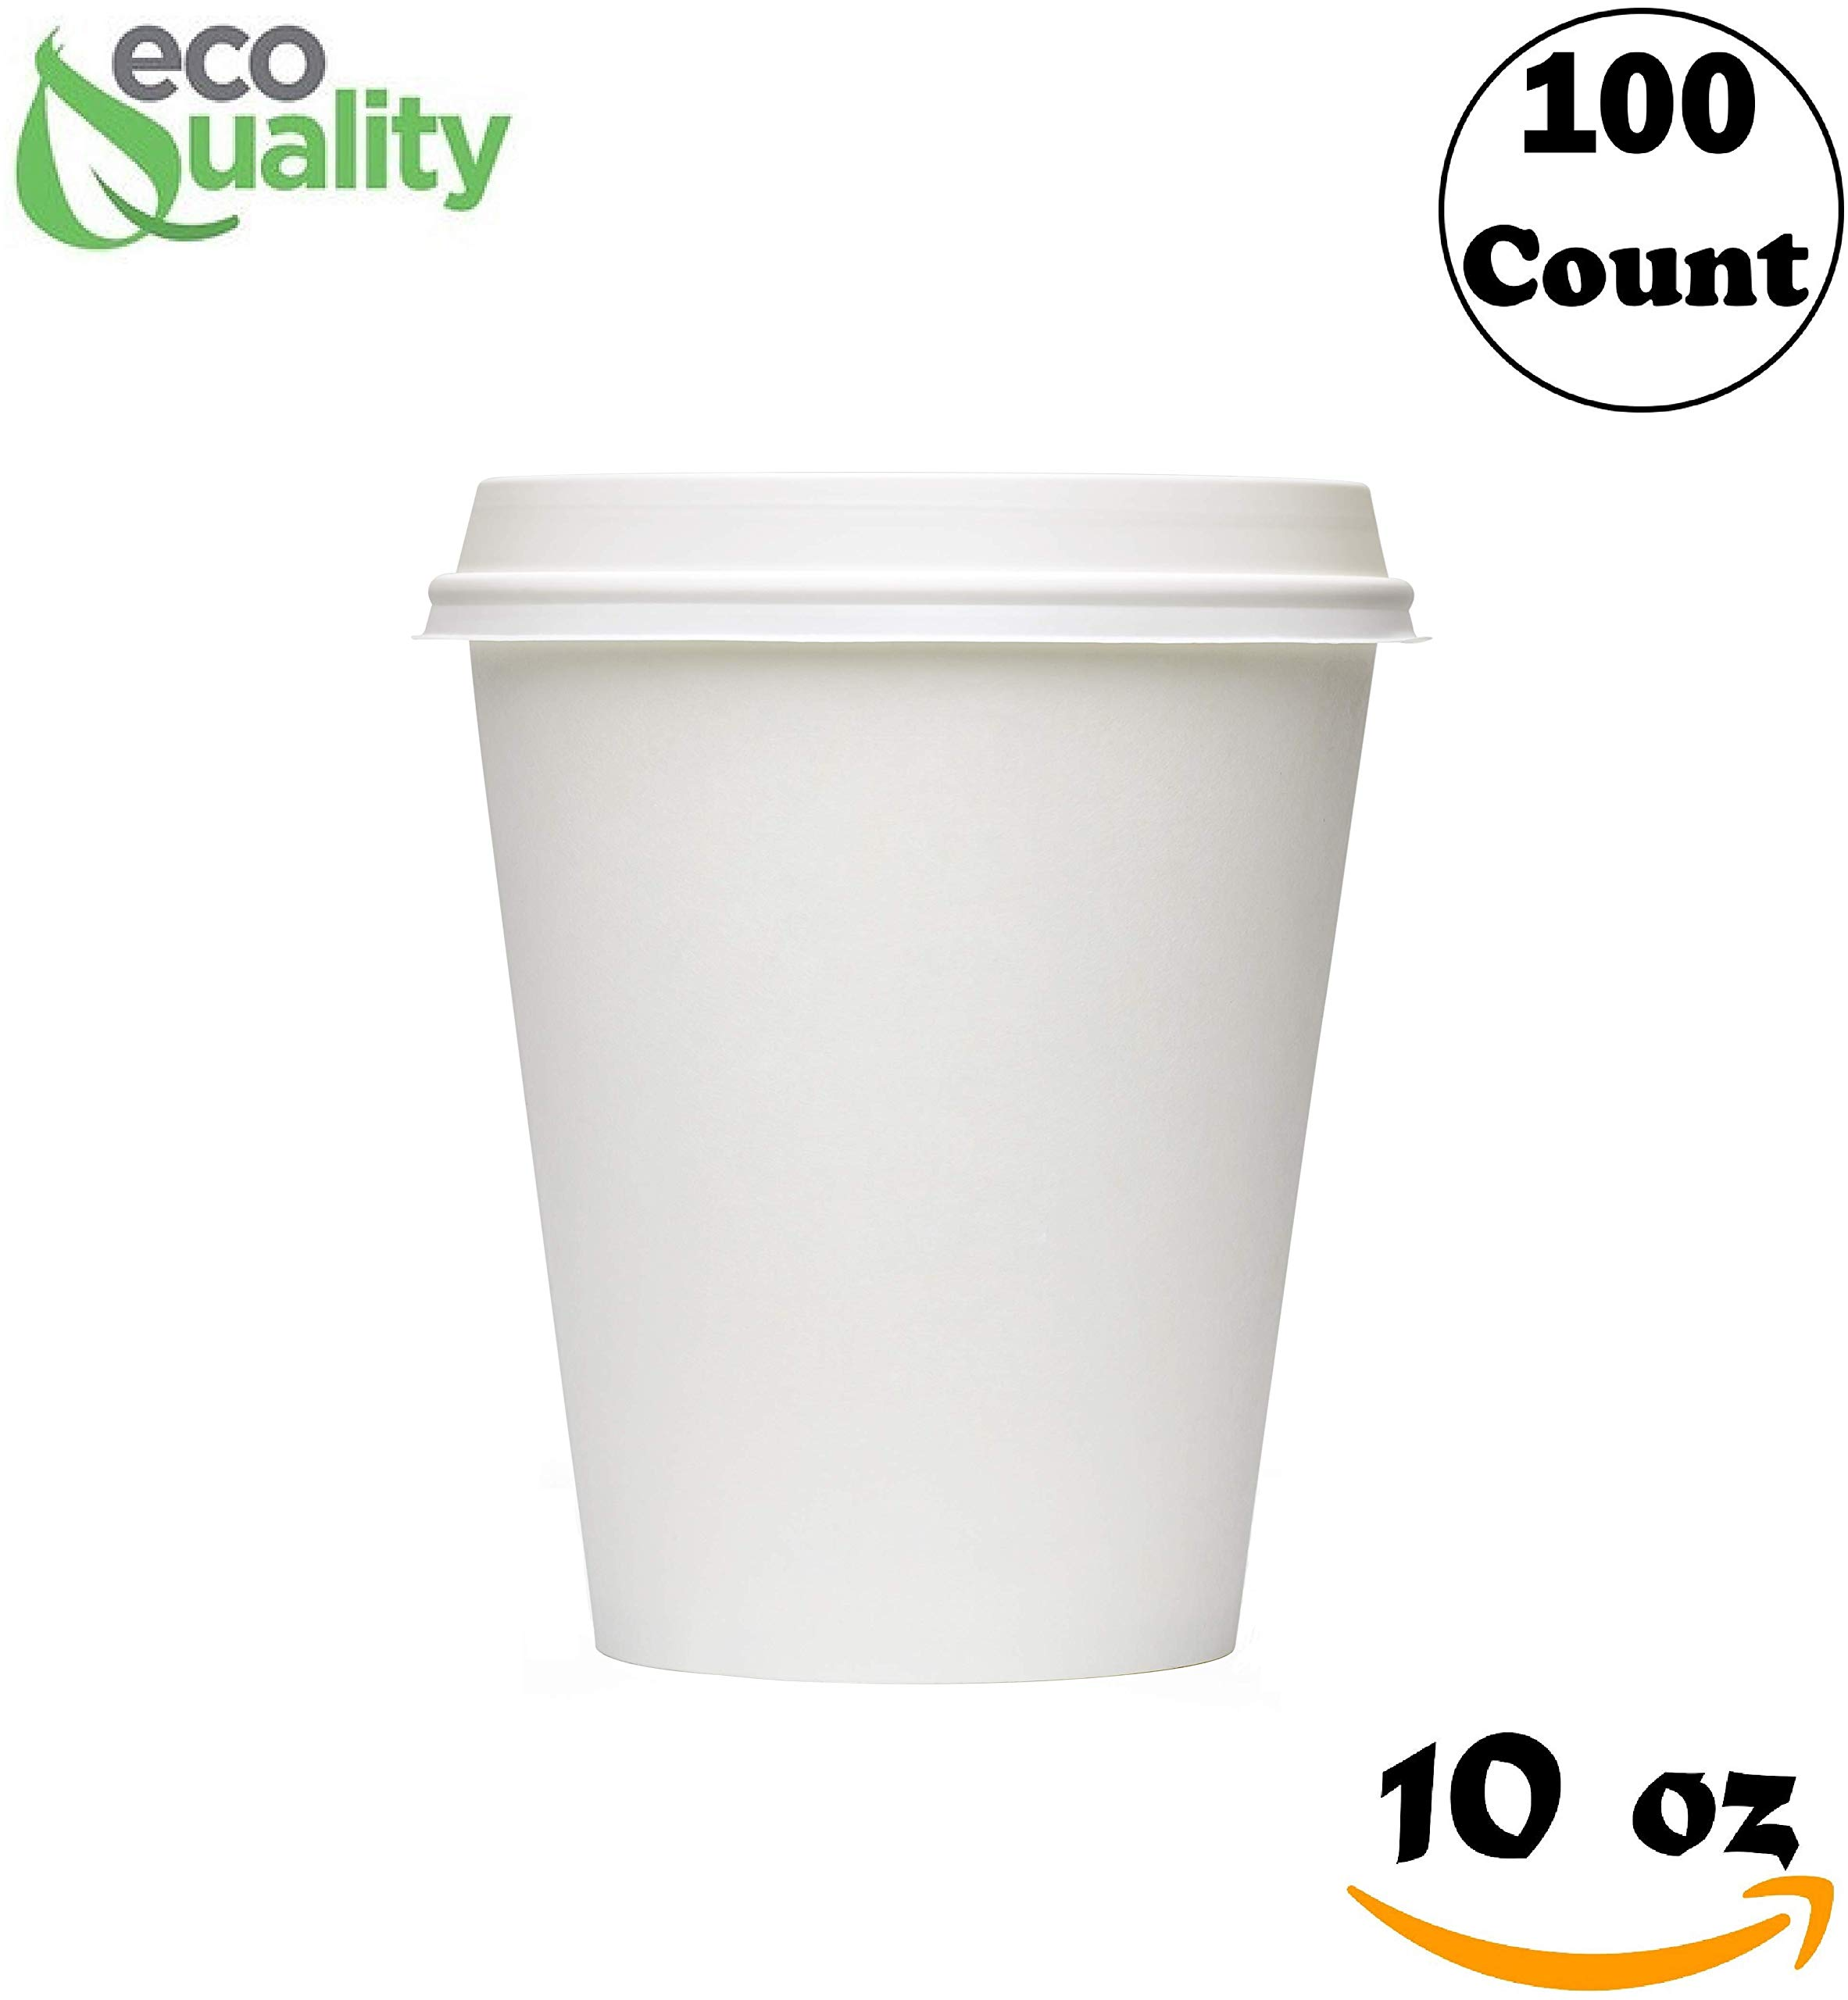 EcoQuality 10 oz White Hot Drink Paper Cups with White Dome Lids - 100 Count - Disposable Paper Coffee Cups perfect for Tea, Latte's, Coffee Shops, Restaurant Grade